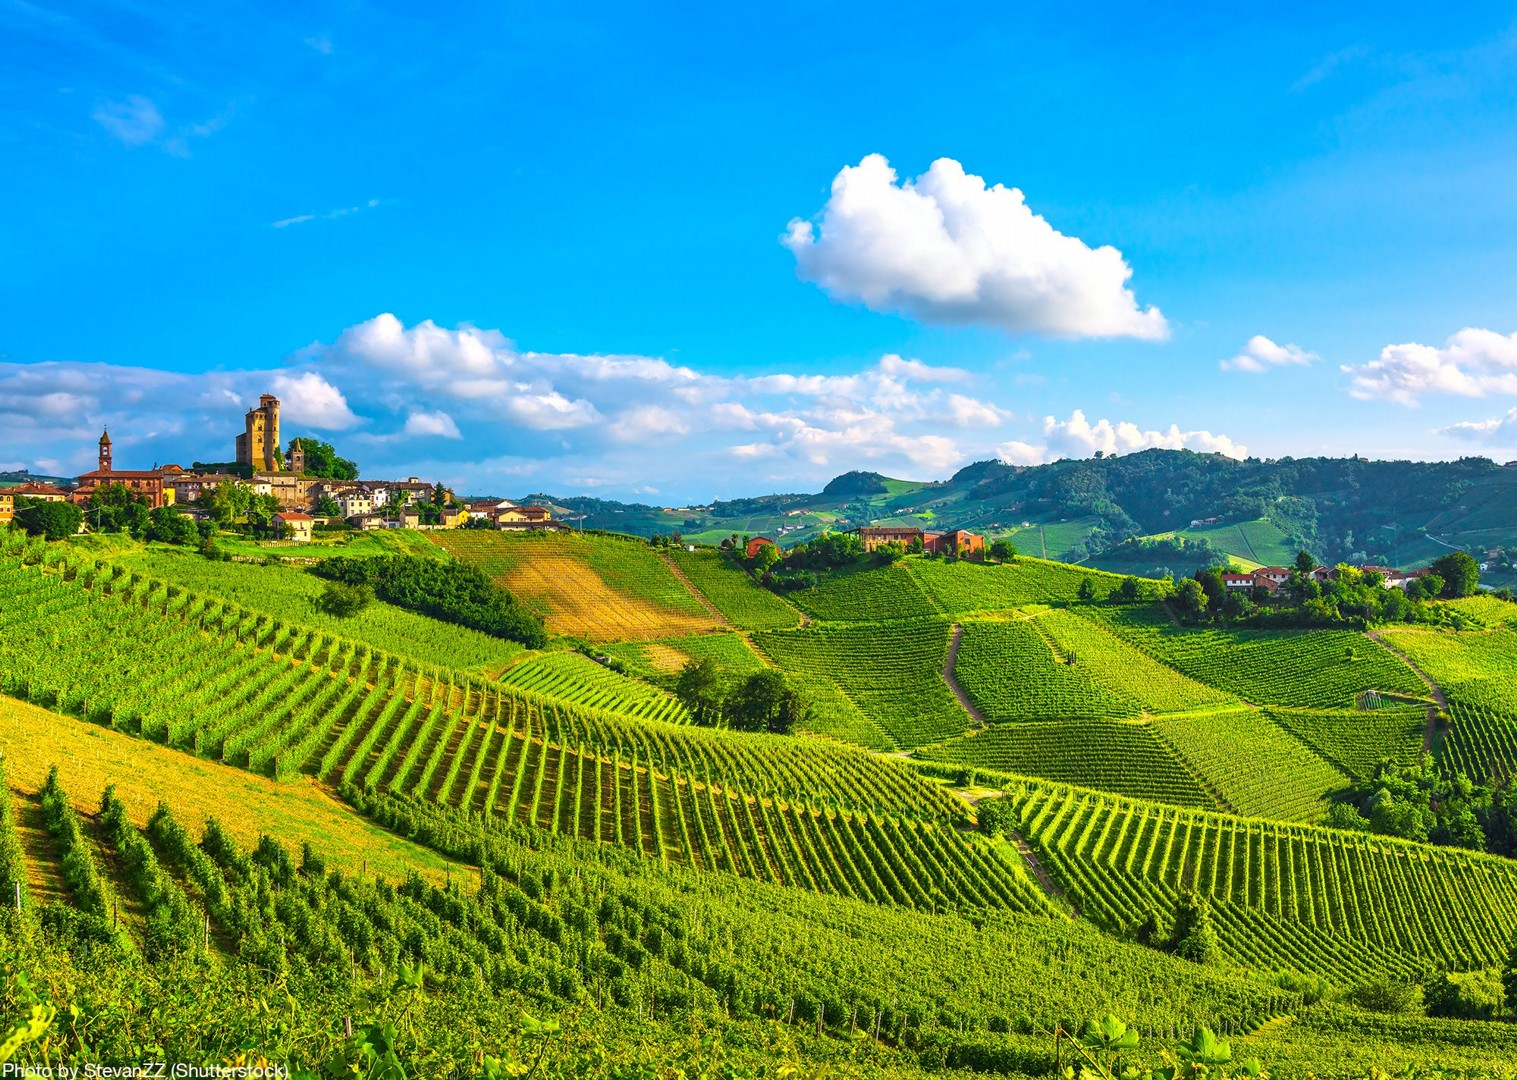 italy-piemonte-cycling-tour-self-guided-vineyards-langhe-roero.jpg - Italy - Piemonte - Vineyards and Views - Self-Guided Leisure Cycling Holiday - Leisure Cycling